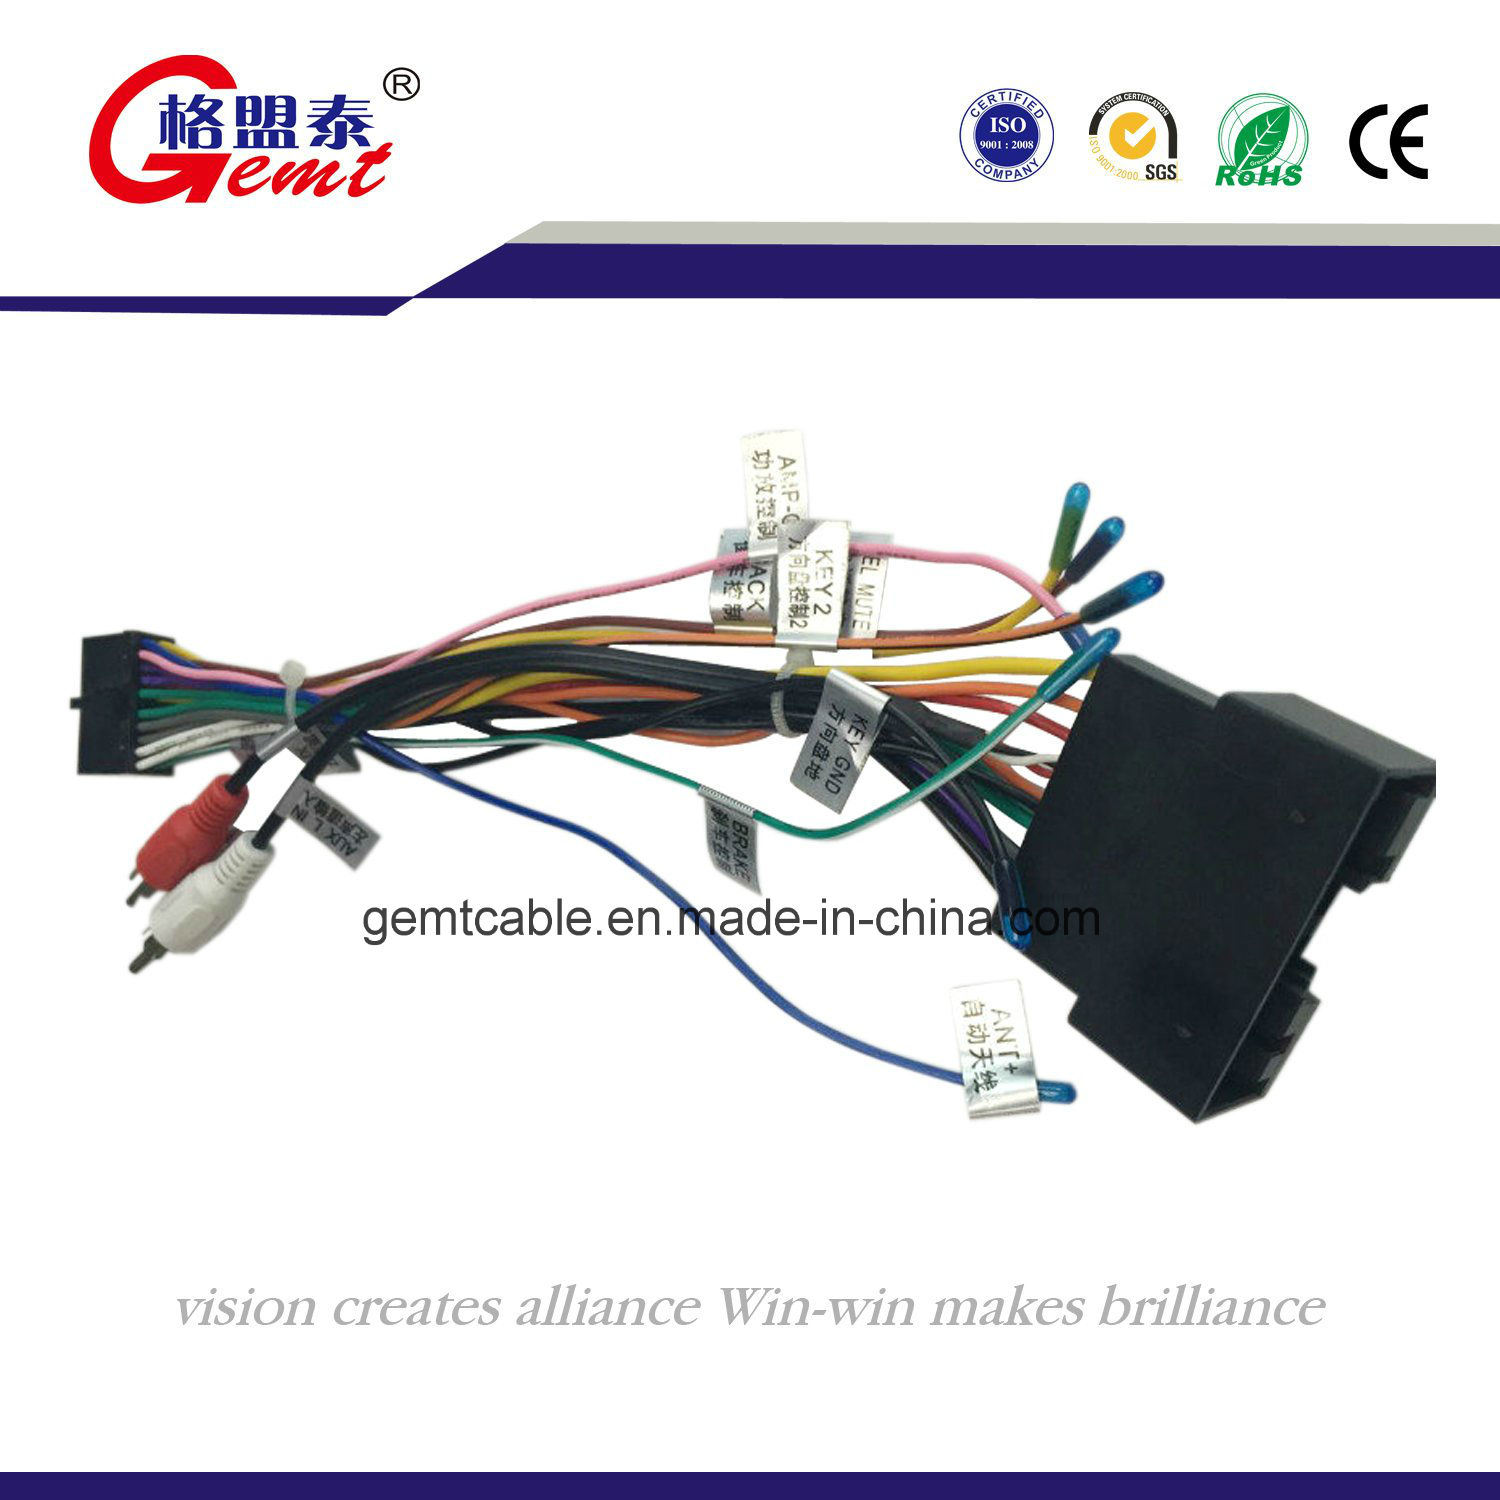 Wiring Harness Manufacturer Psa Car Fuse Box Diagram Peugeot Expert Diy Enthusiasts Diagrams China Citroen Extension Cord Photos Rh Gemtcable En Made In Com Engine Pakistan